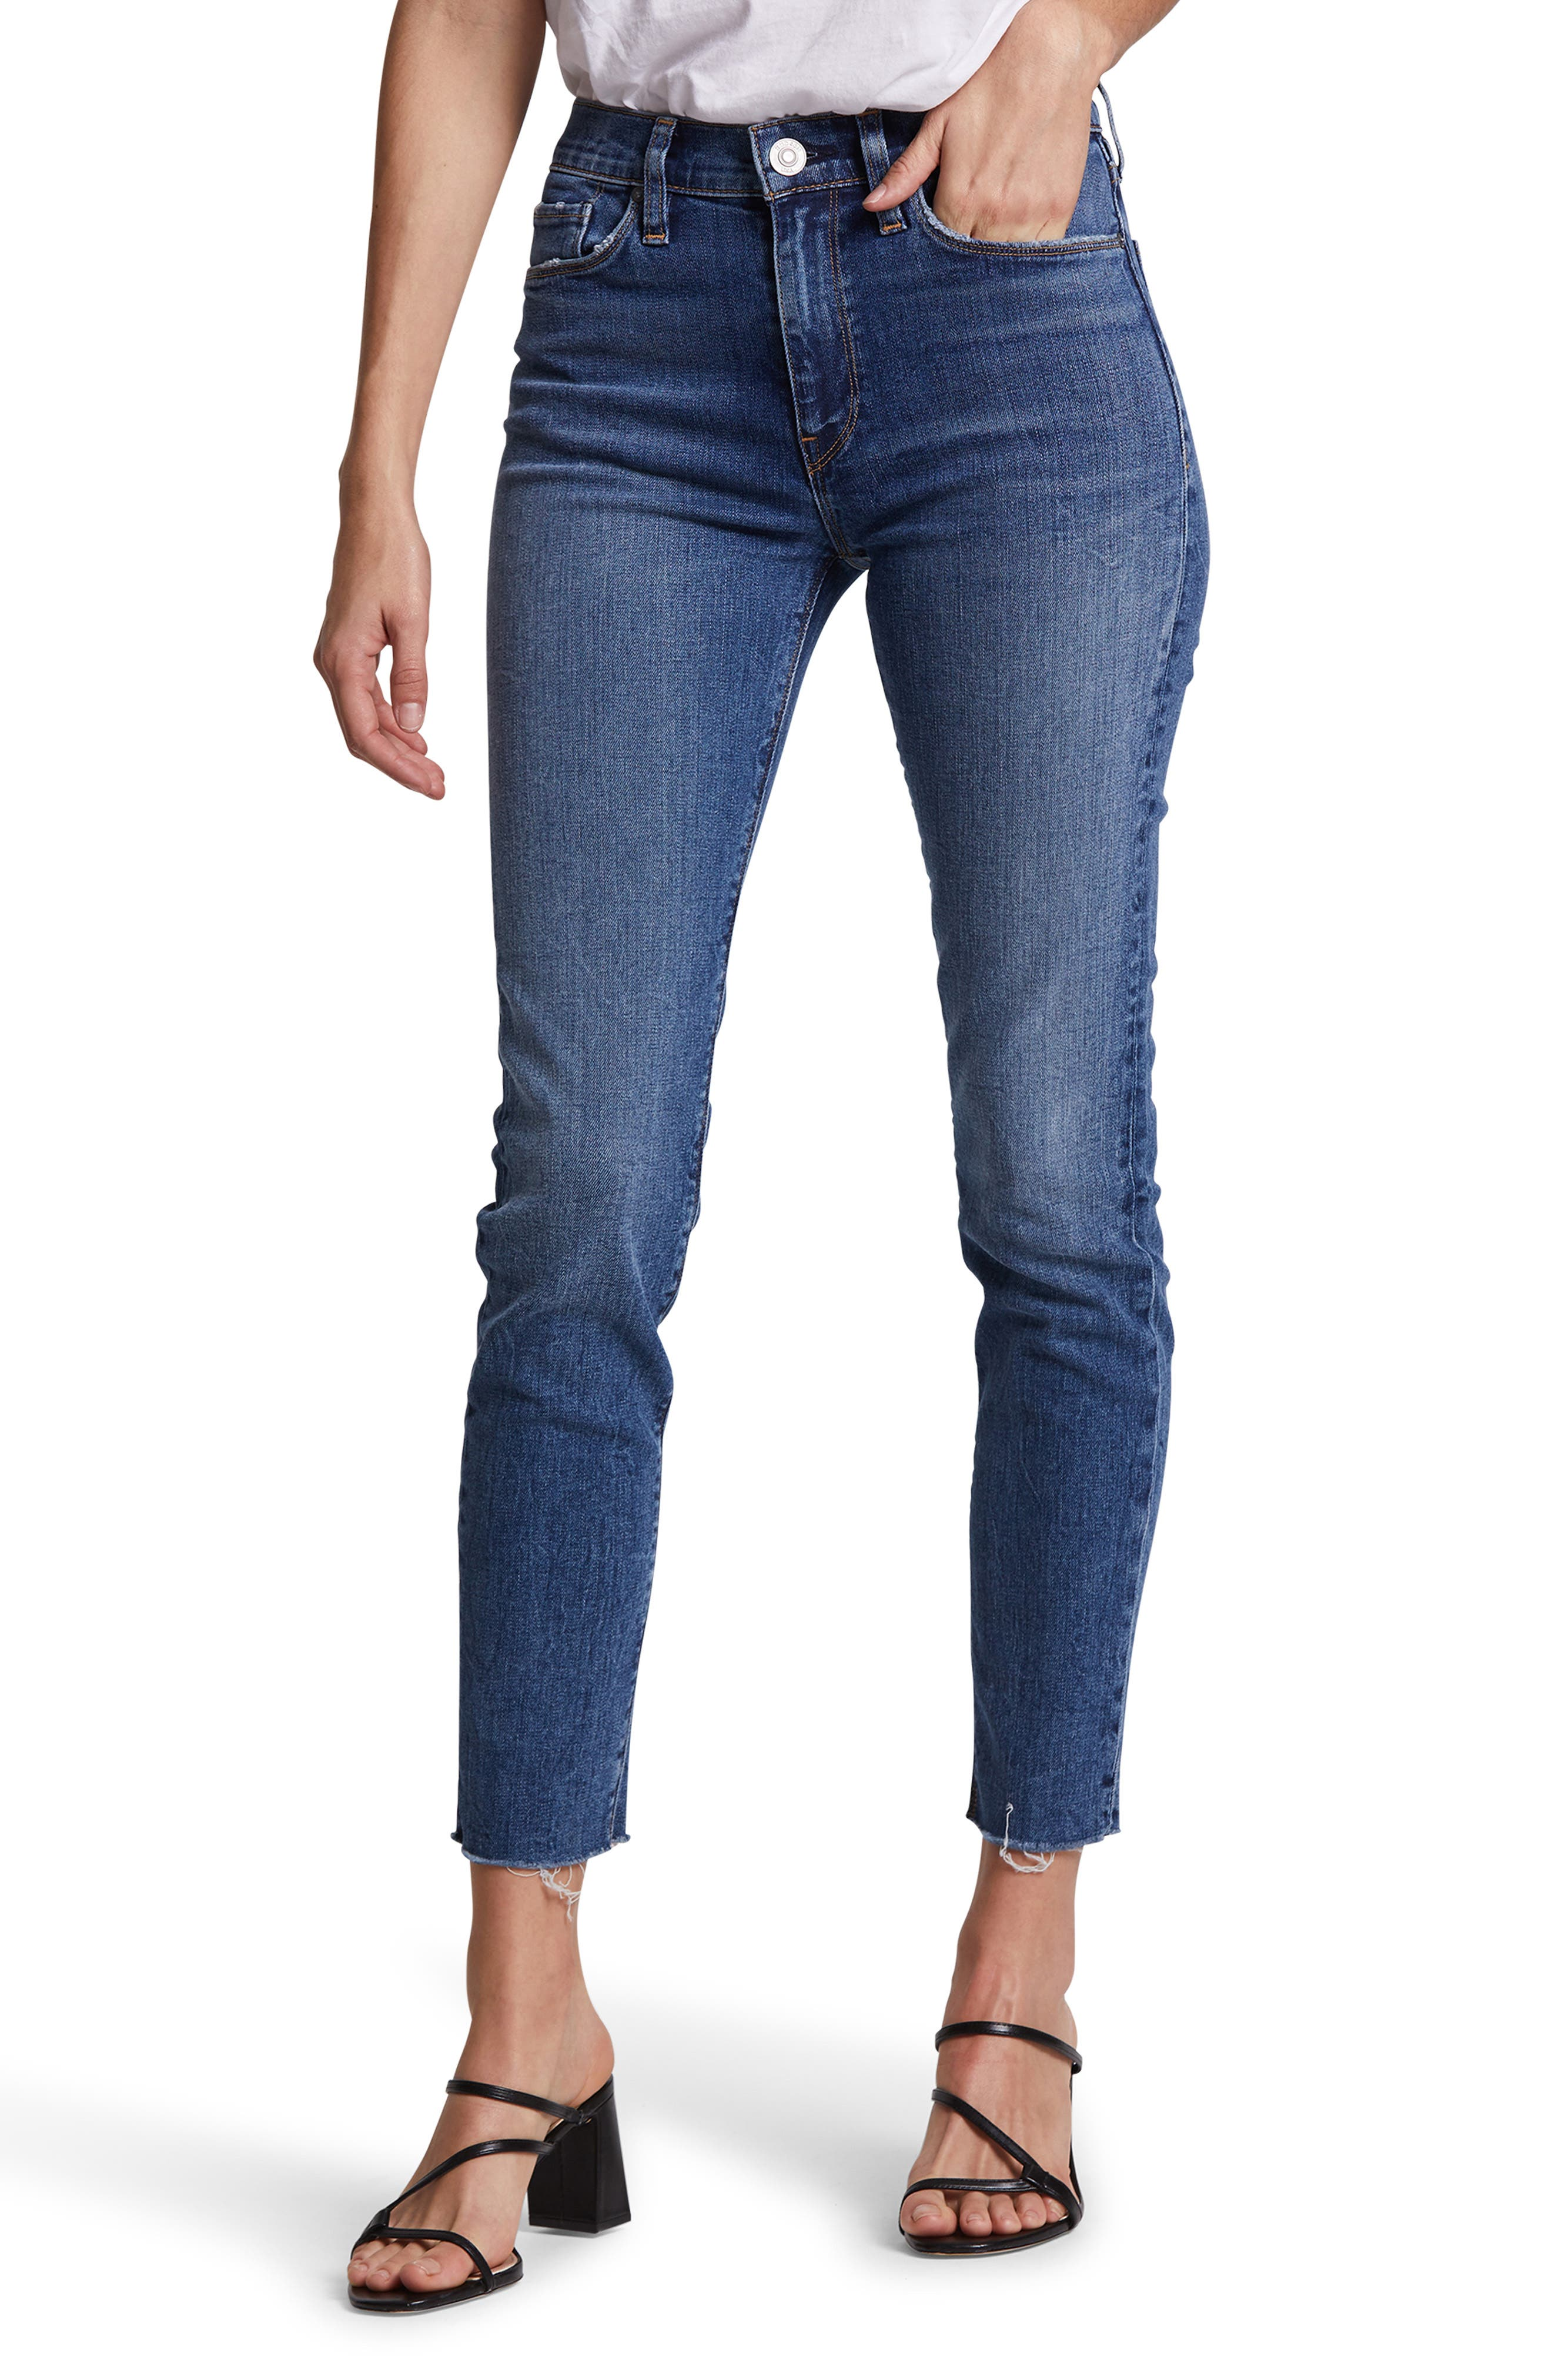 A rip at the knee authenticates sleek high-waisted skinnies as favorites you\\\'ll feel like you\\\'ve loved forever. Style Name: Hudson Jeans Barbara Ripped High Waist Ankle Skinny Jeans. Style Number: 5956120. Available in stores.